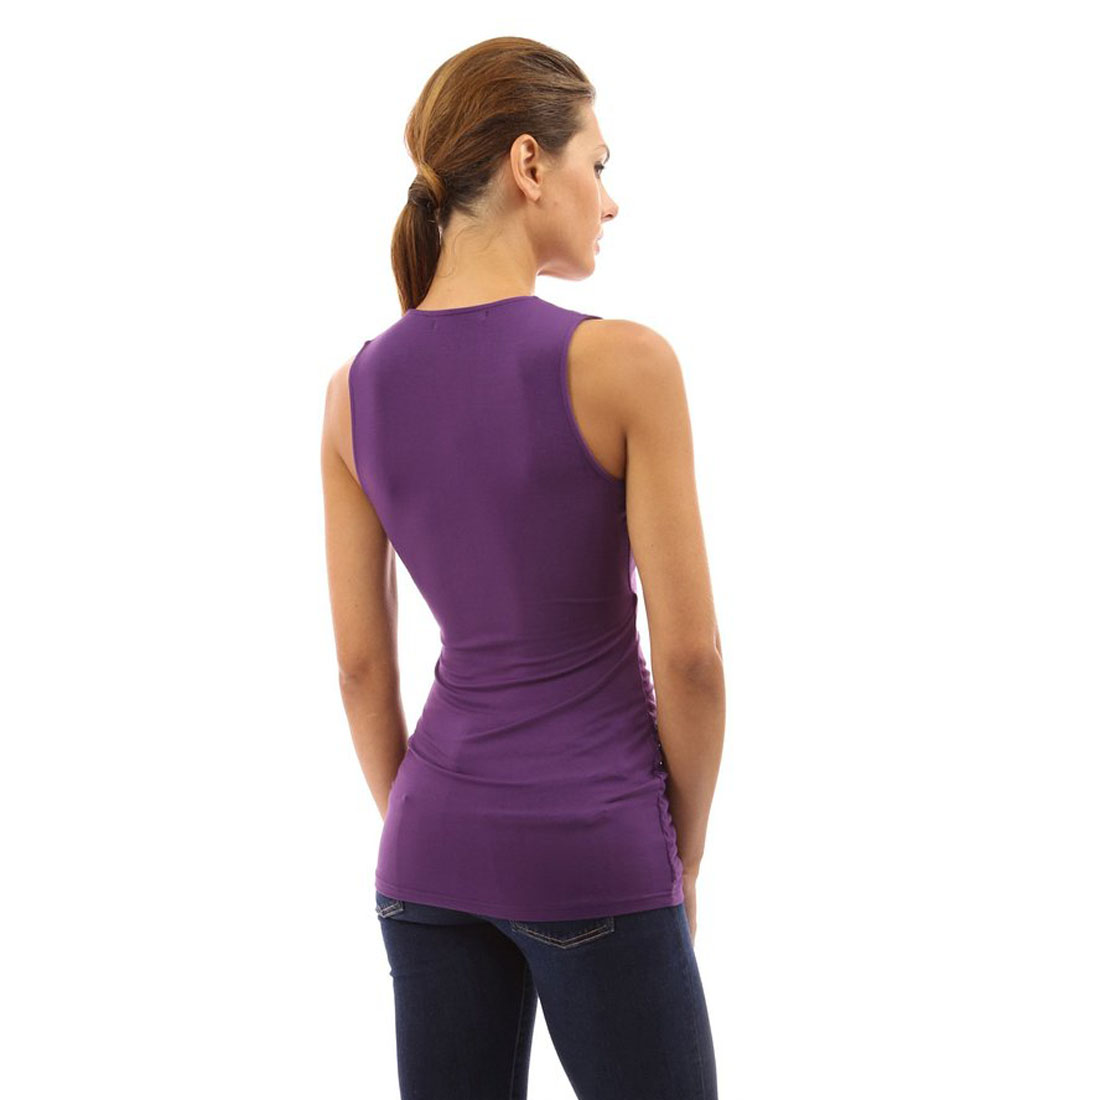 Design custom made v neck ladies t-shirts online. Free shipping, bulk discounts and no minimums or setups for custom made v neck ladies t-shirts. Free design templates. Over 10 million customer designs since